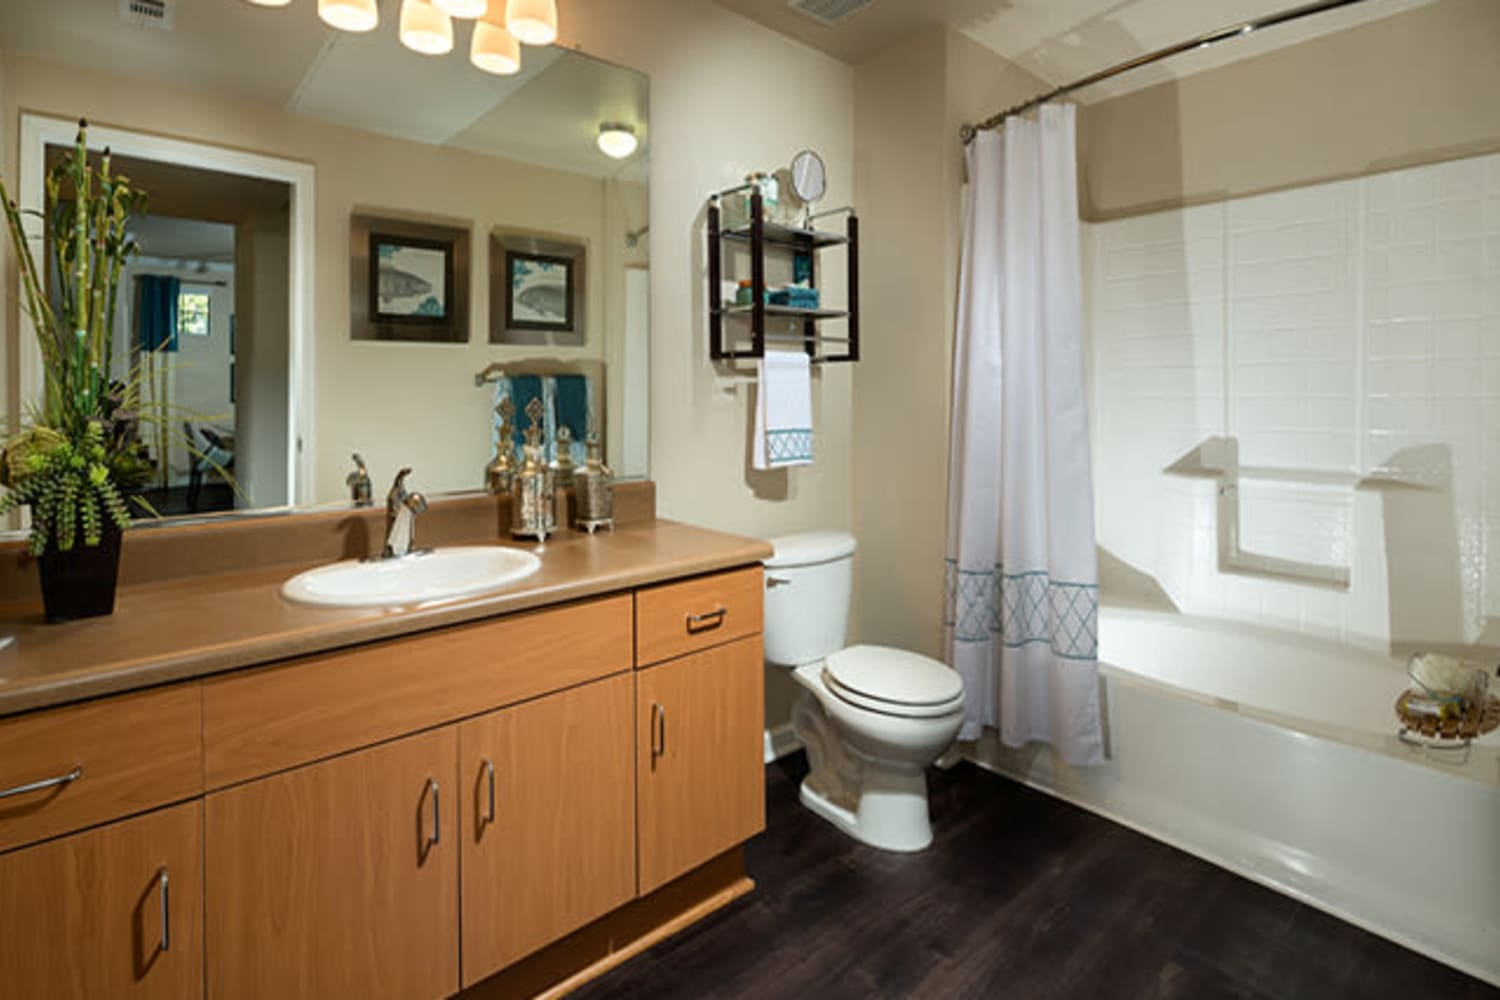 Bathrooms with ample counter space at Links at Westridge in Valencia, California